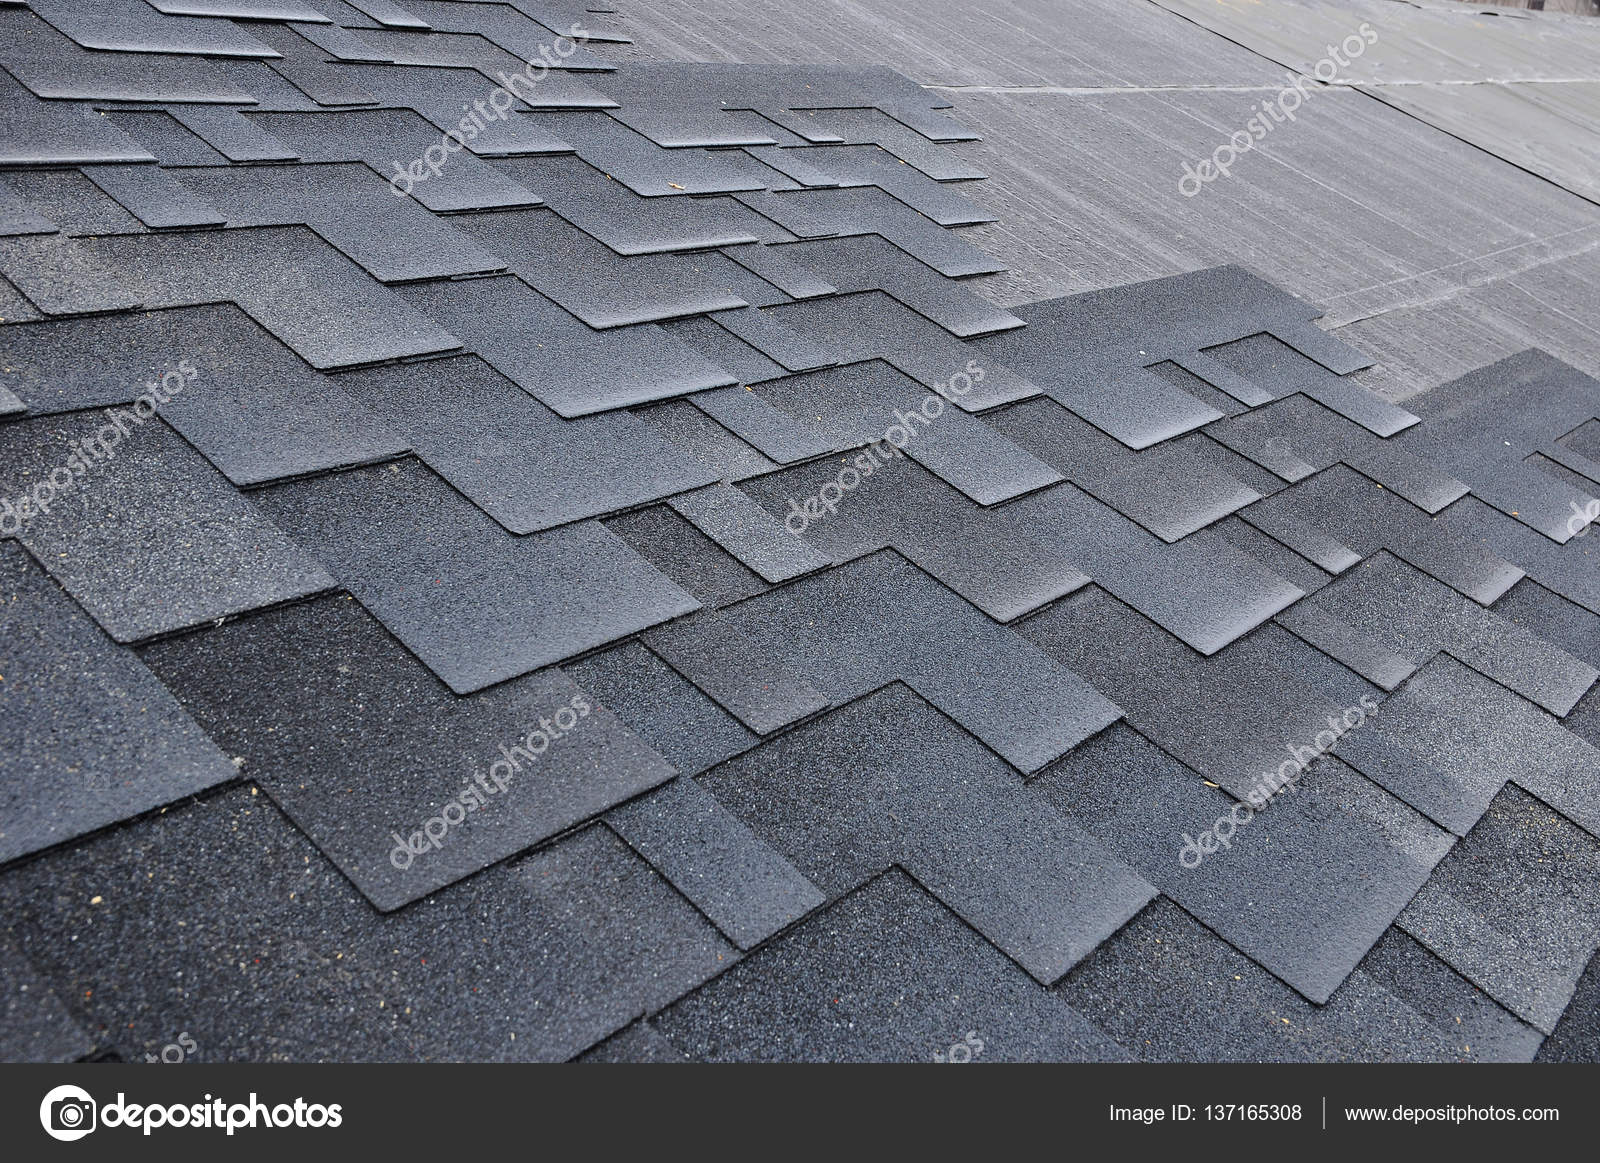 Modified Roofing Materials : Roof bitumen newly installed modified roofing